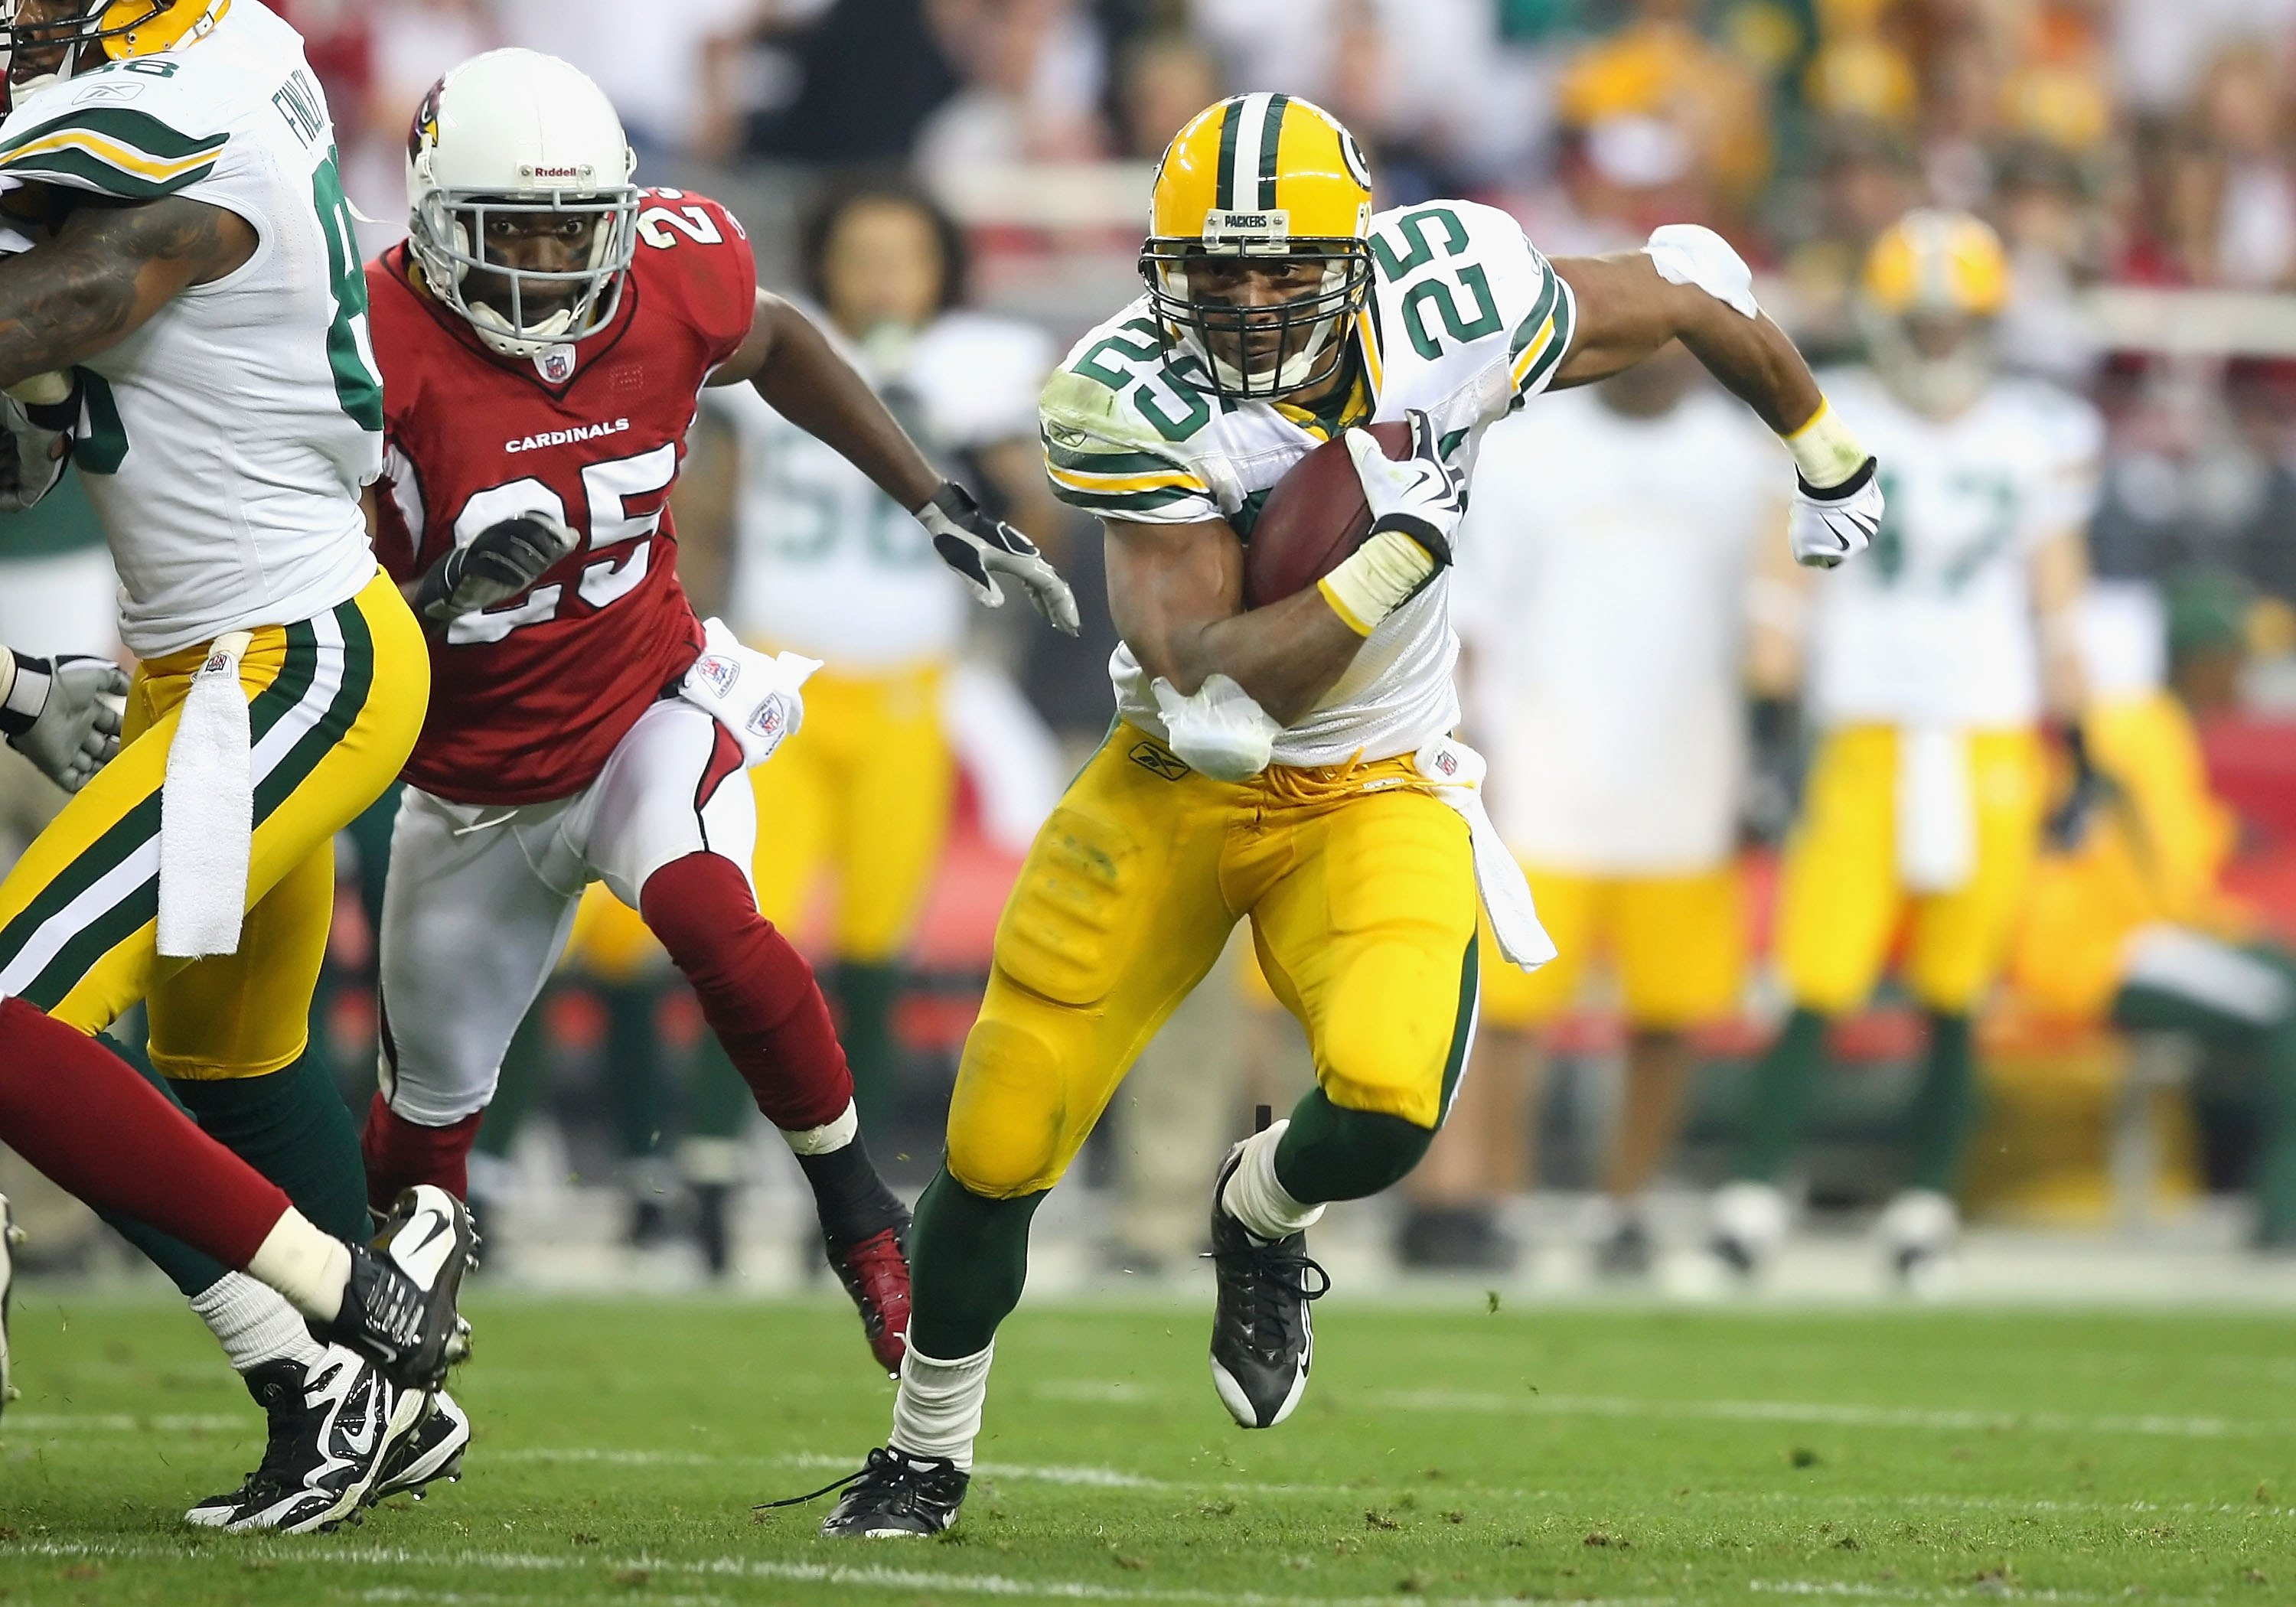 GLENDALE, AZ - JANUARY 10:  Runningback Ryan Grant #25 of the Green Bay Packers rushes the football during the 2010 NFC wild-card playoff game against the Arizona Cardinals at the Universtity of Phoenix Stadium on January 10, 2010 in Glendale, Arizona.  T